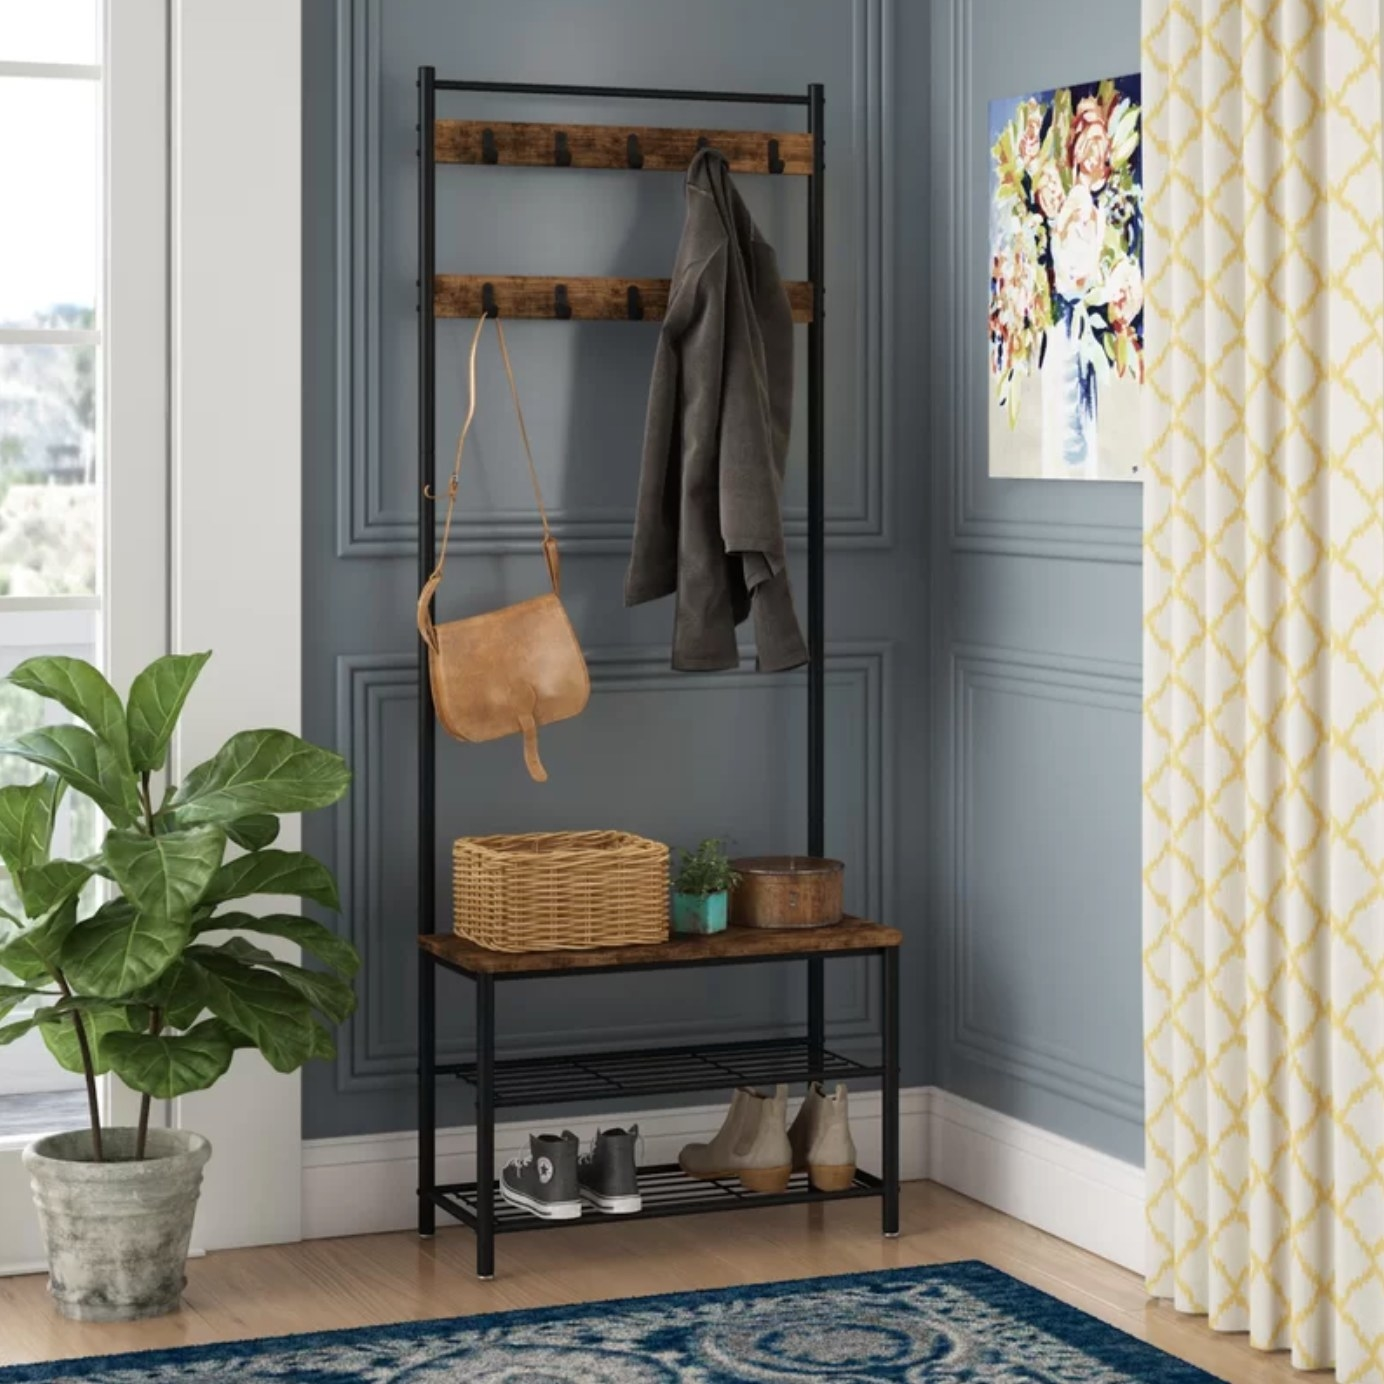 The hall tree with shoe storage, a bench, and coat hooks